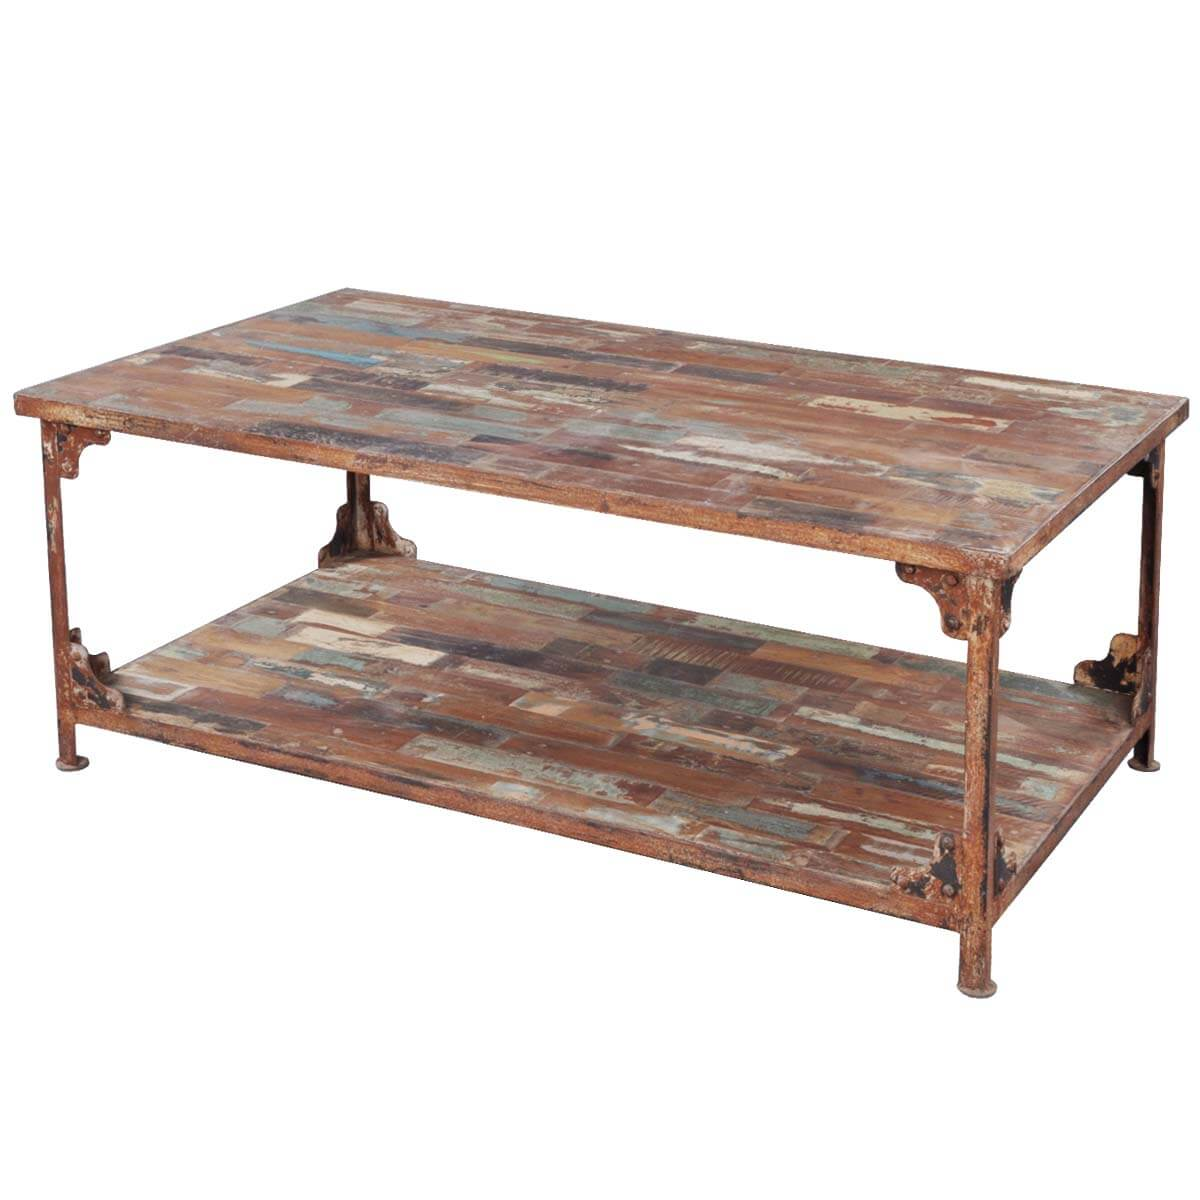 Distressed reclaimed wood industrial wrought iron rustic for Rustic coffee table